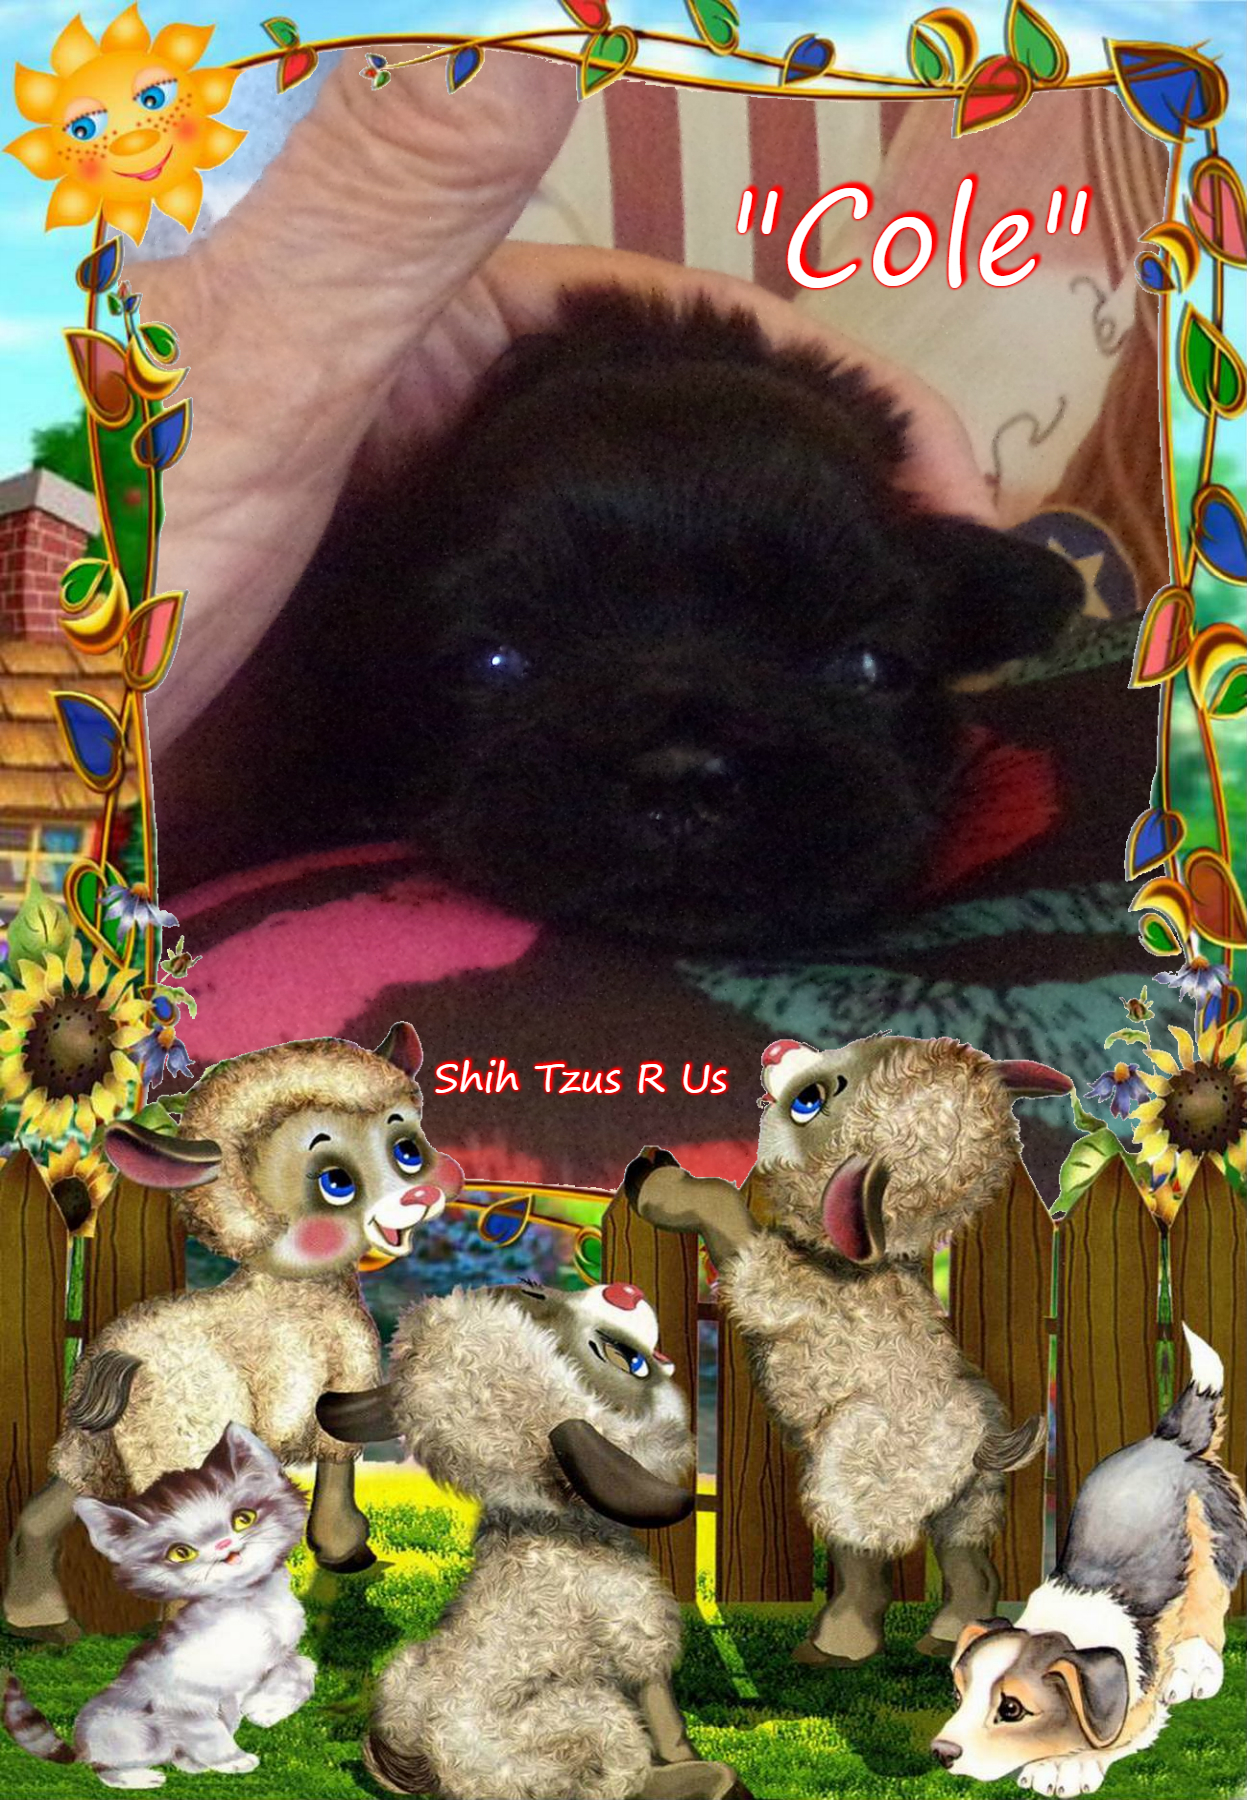 Shih Tzu R Us Please Use The Contact Us Form On The Contact Us